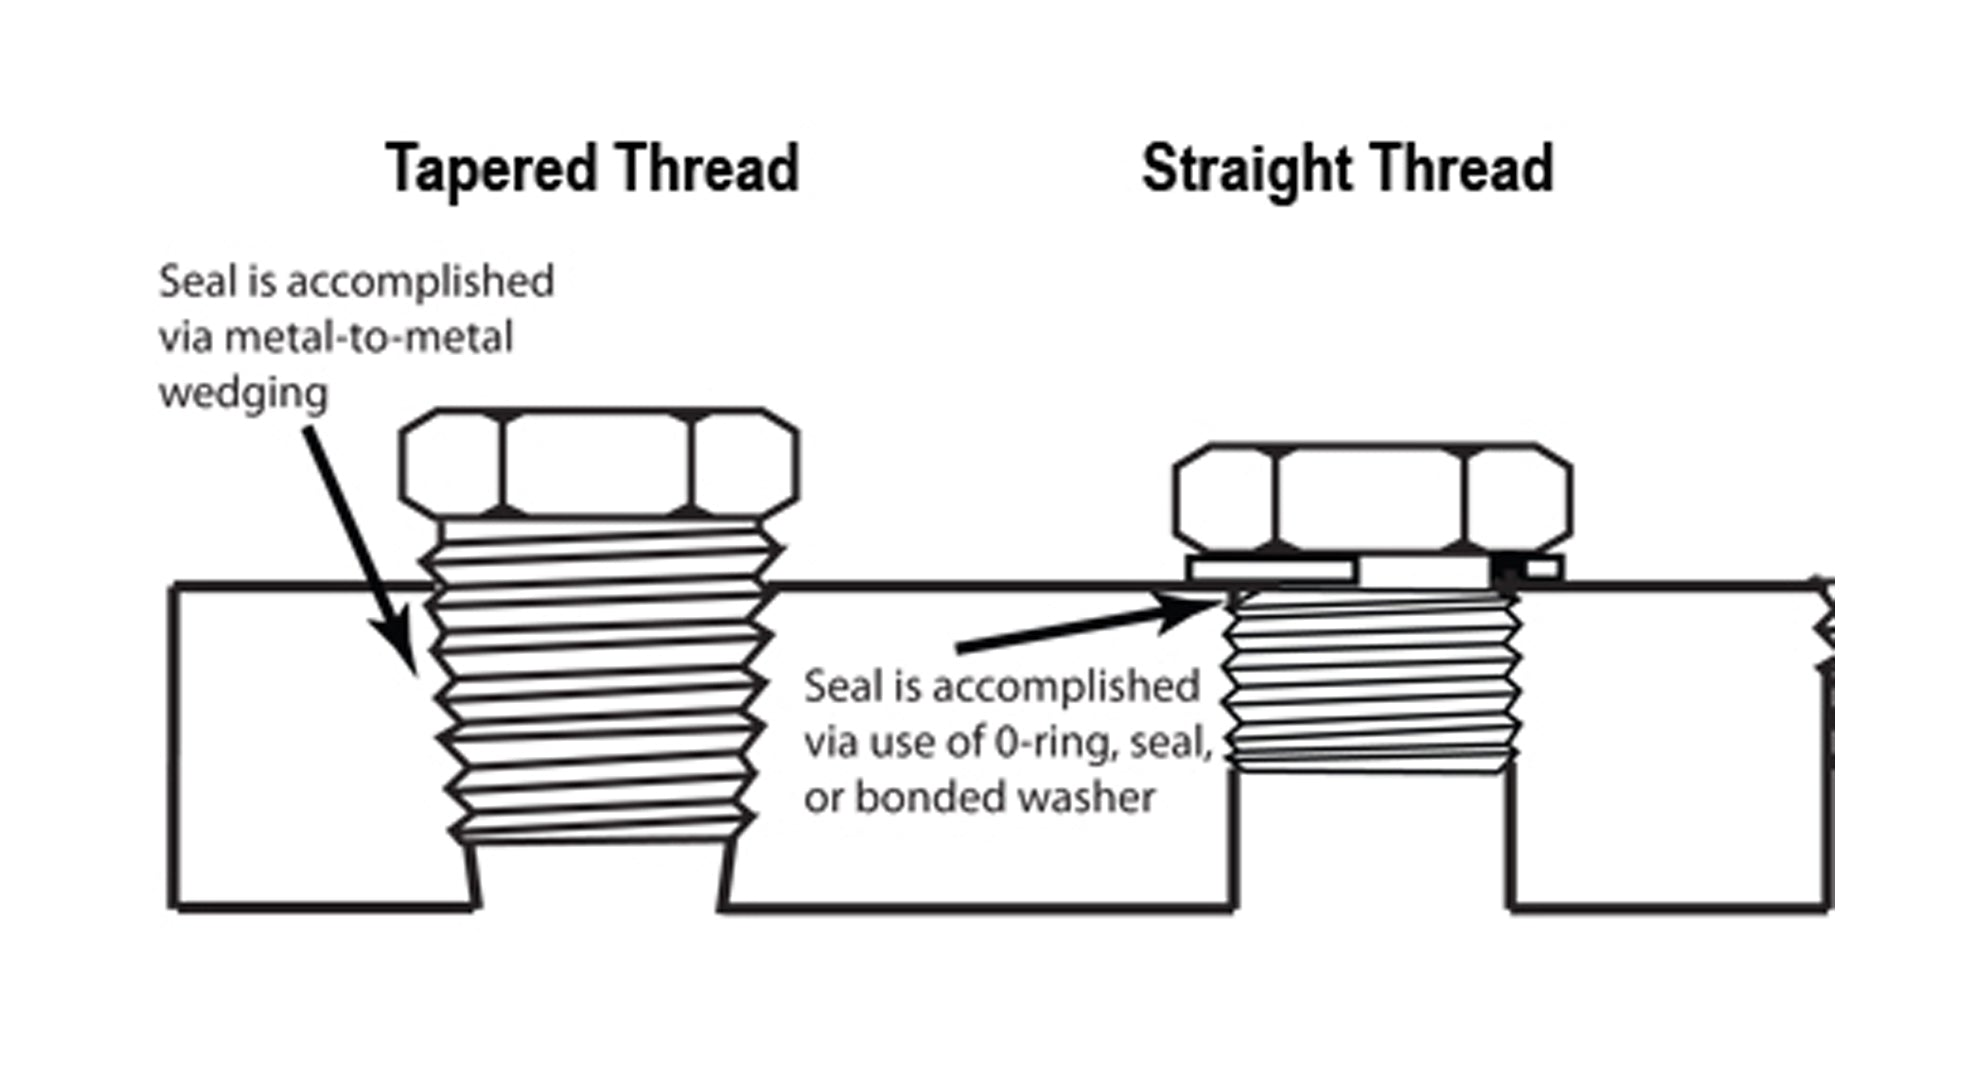 Straight Versus Tapered Threads